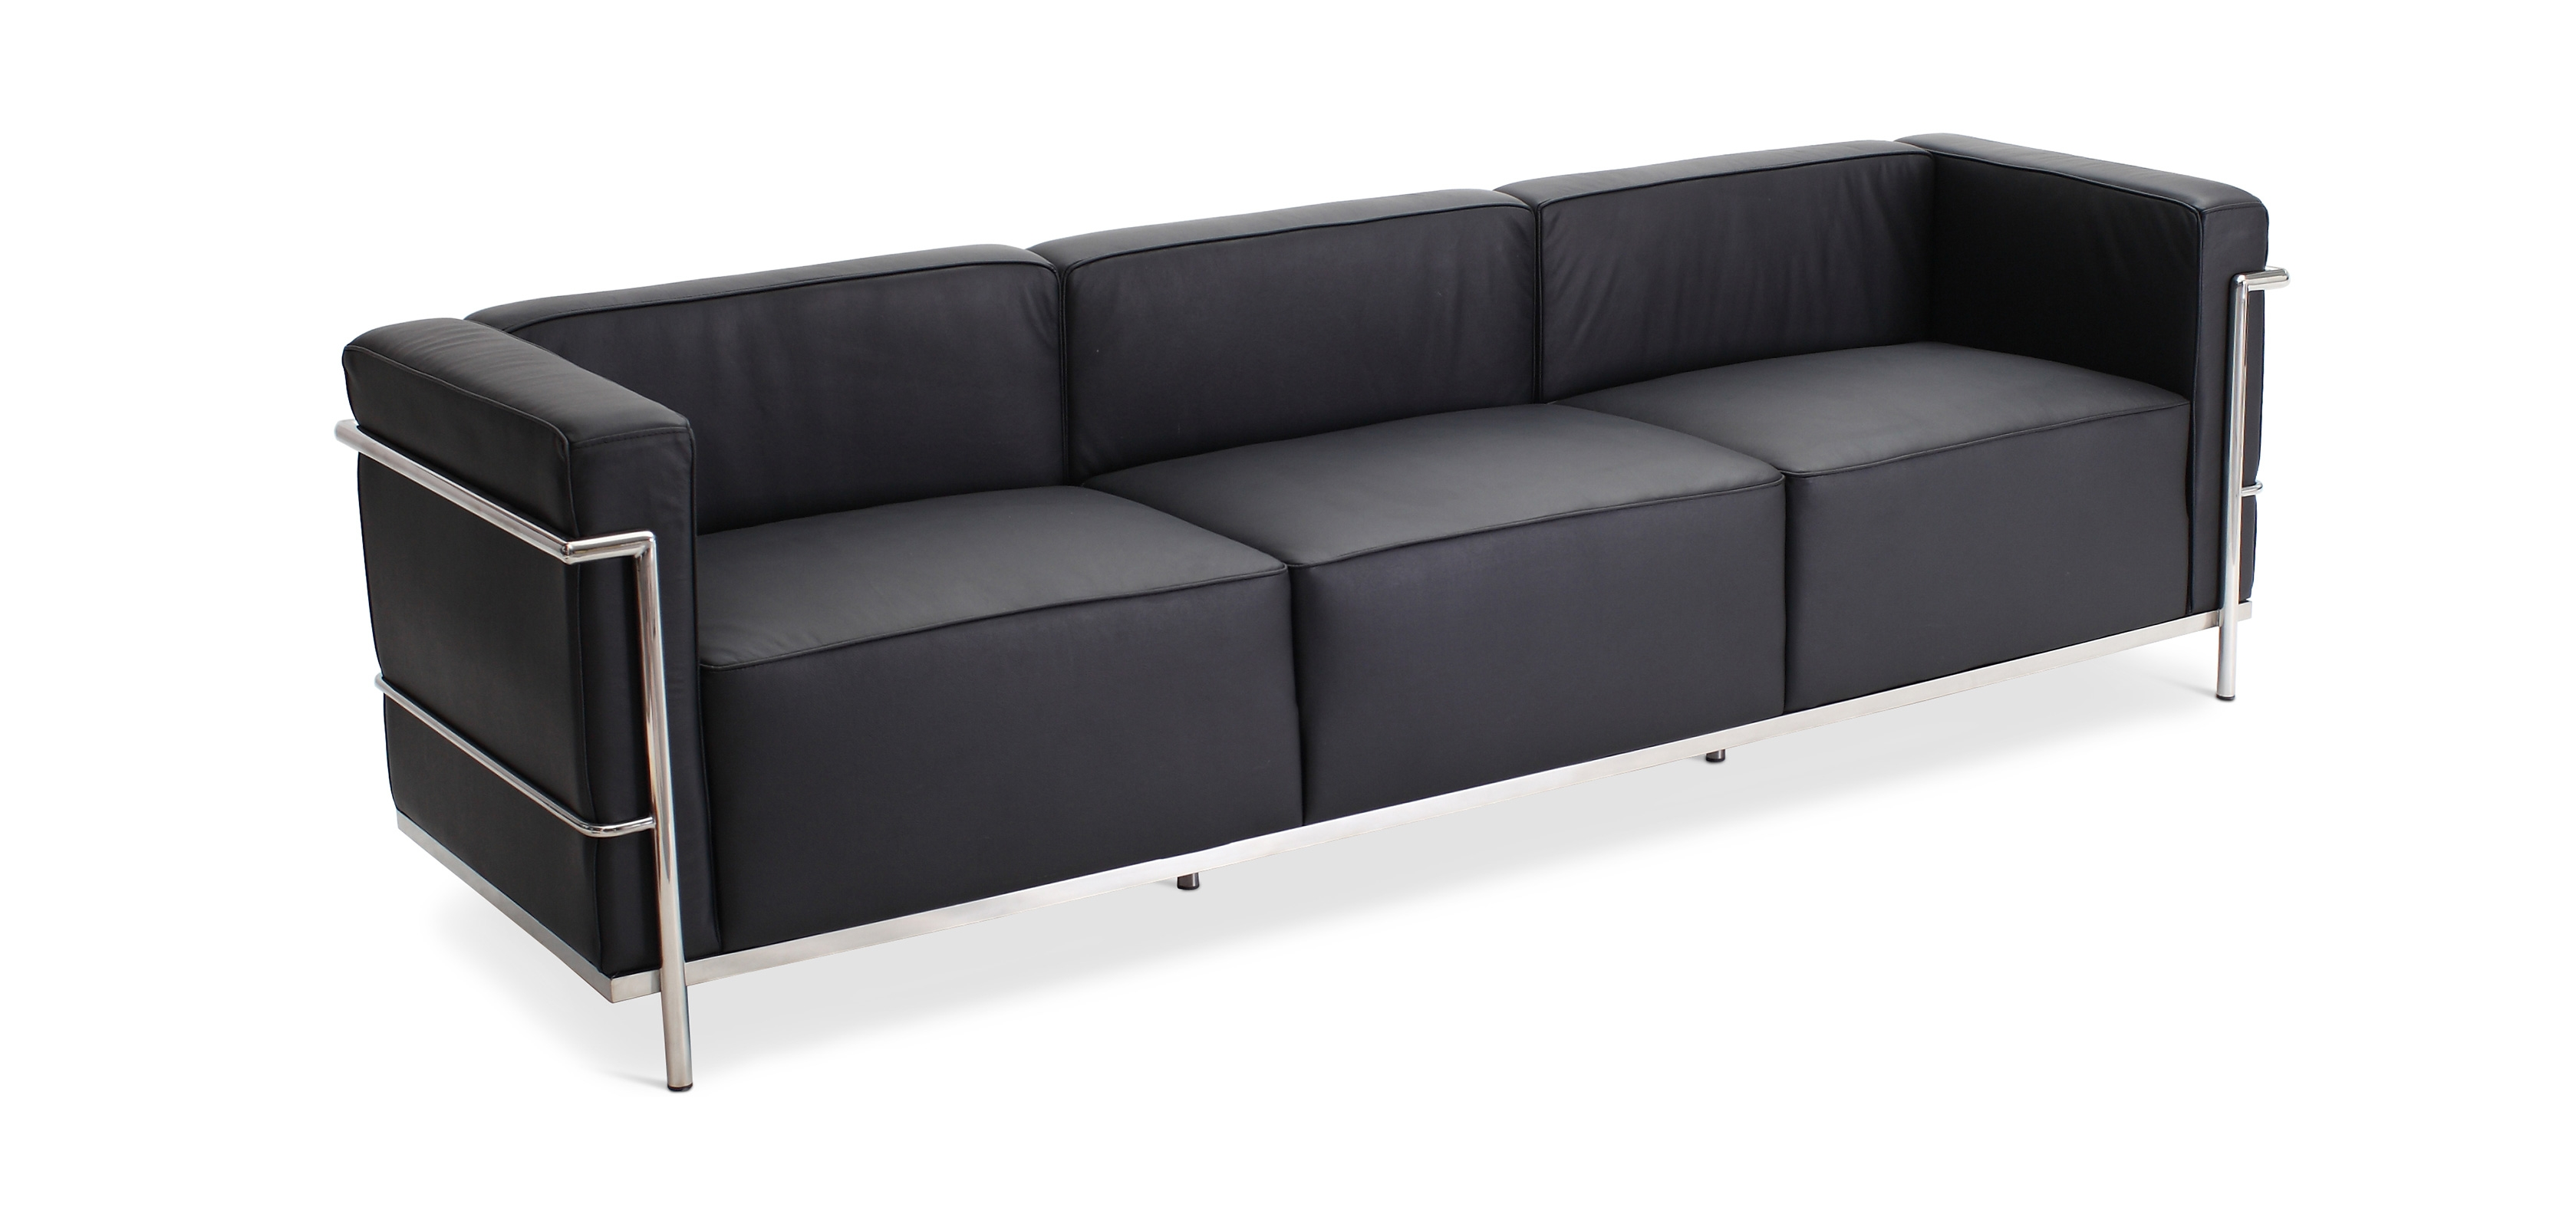 Buy Sofa LC3 Style Le Corbusier Leather Black 13239 - in the UK